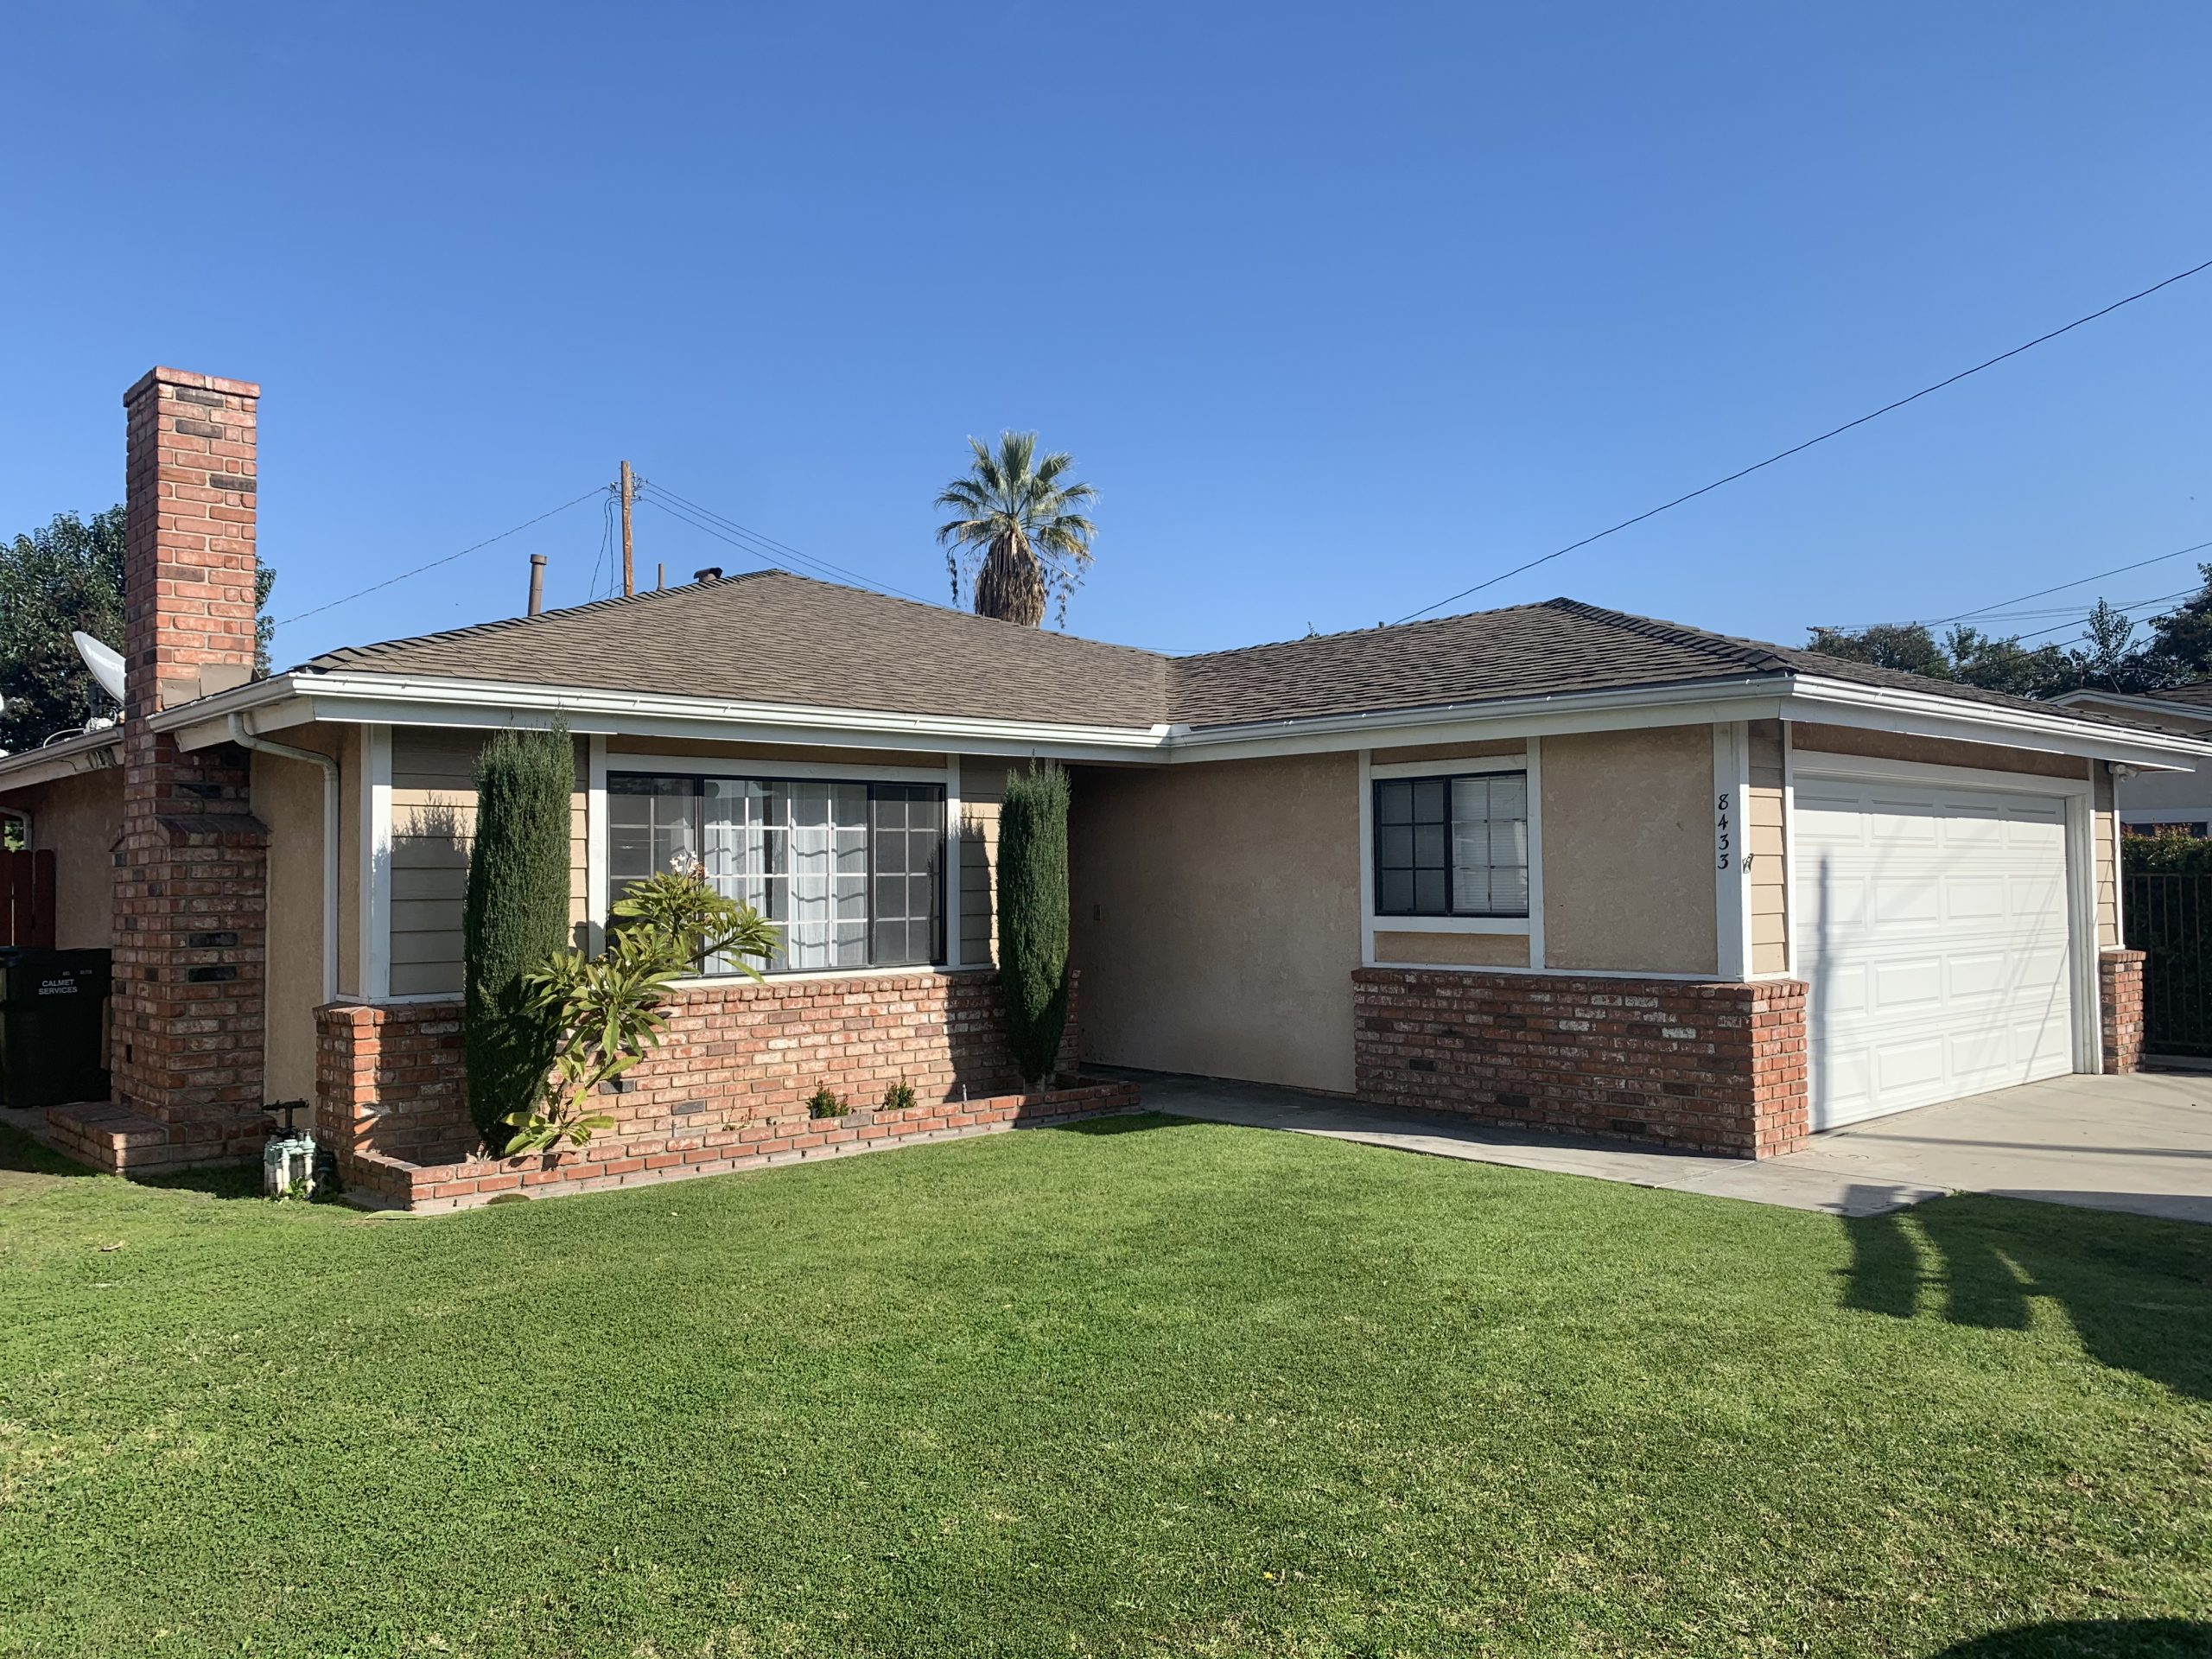 8433 Cole St, Downey, CA 90241